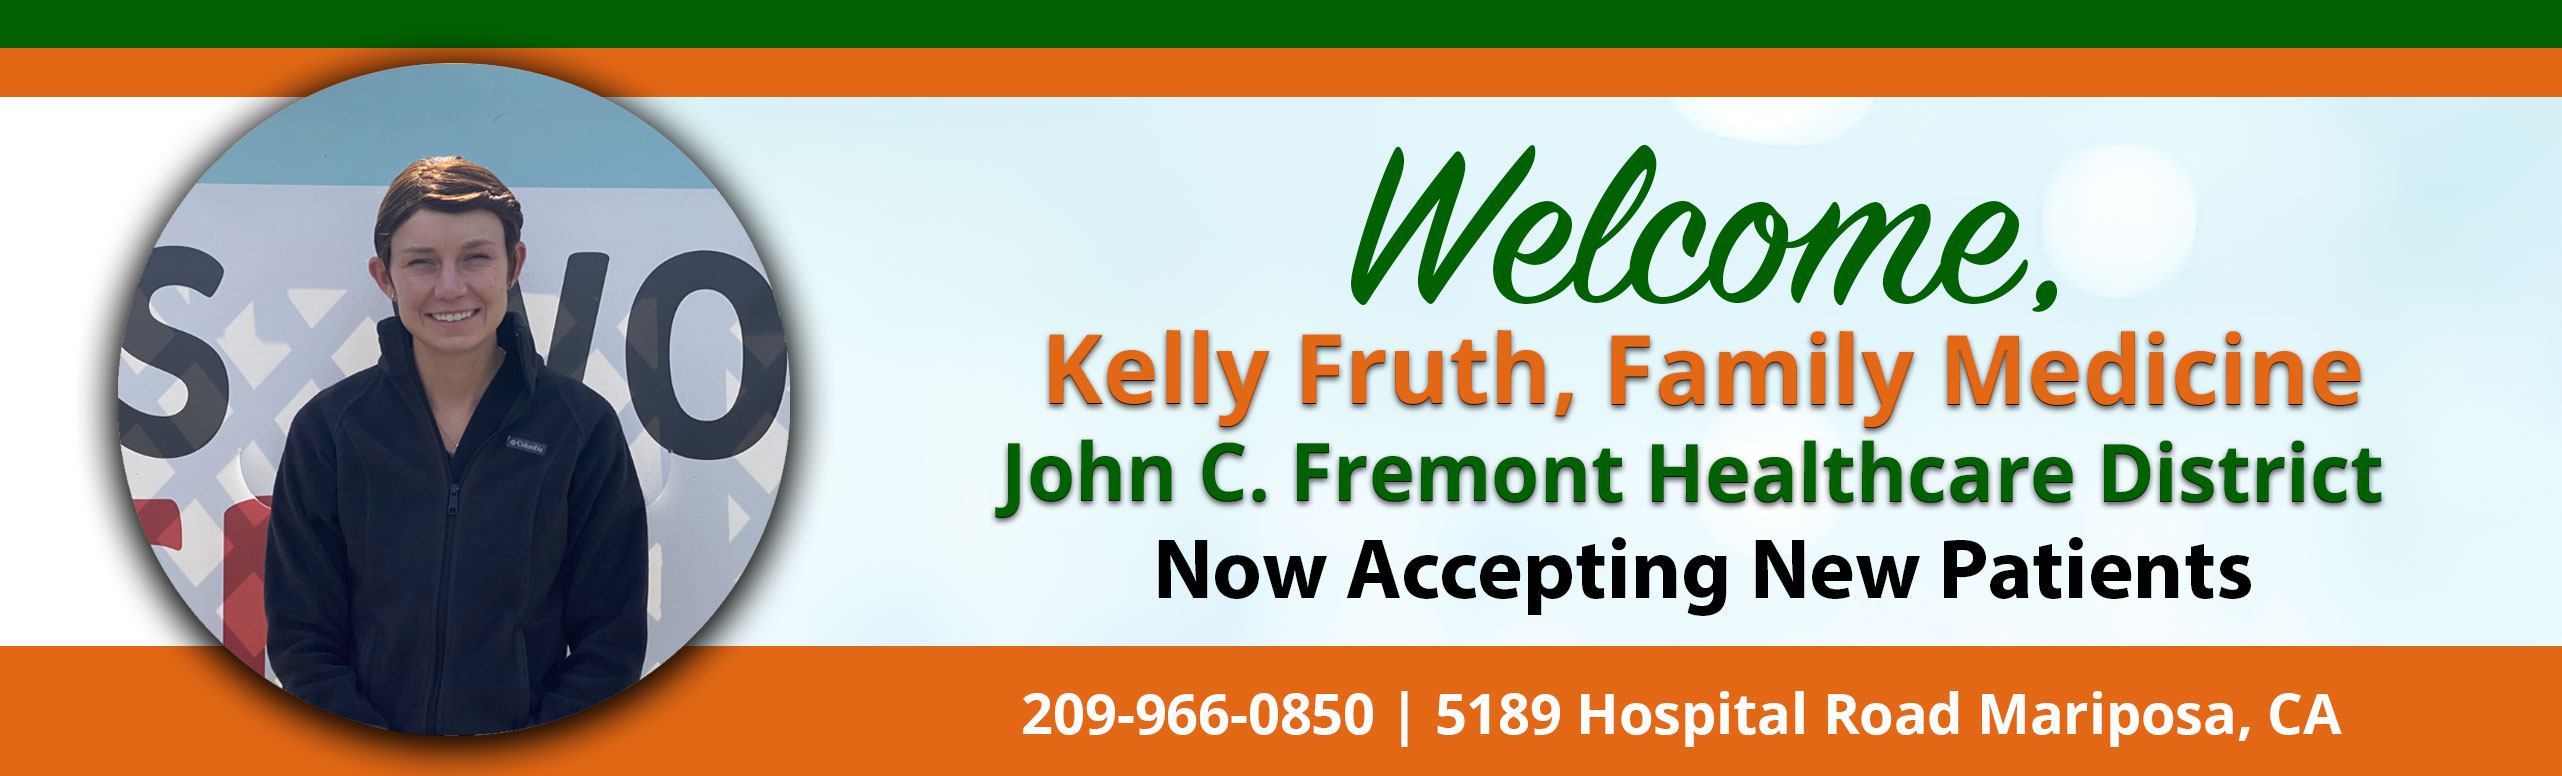 Banner Picture of Kelly Fruth, Family Medicine  Banner says: Welcome, Kelly Fruth, Family Medicine John C. Fremont Healthcare District Now Accepting New Patients 209-966-0850 |  5189 Hospital Road Mariposa, CA